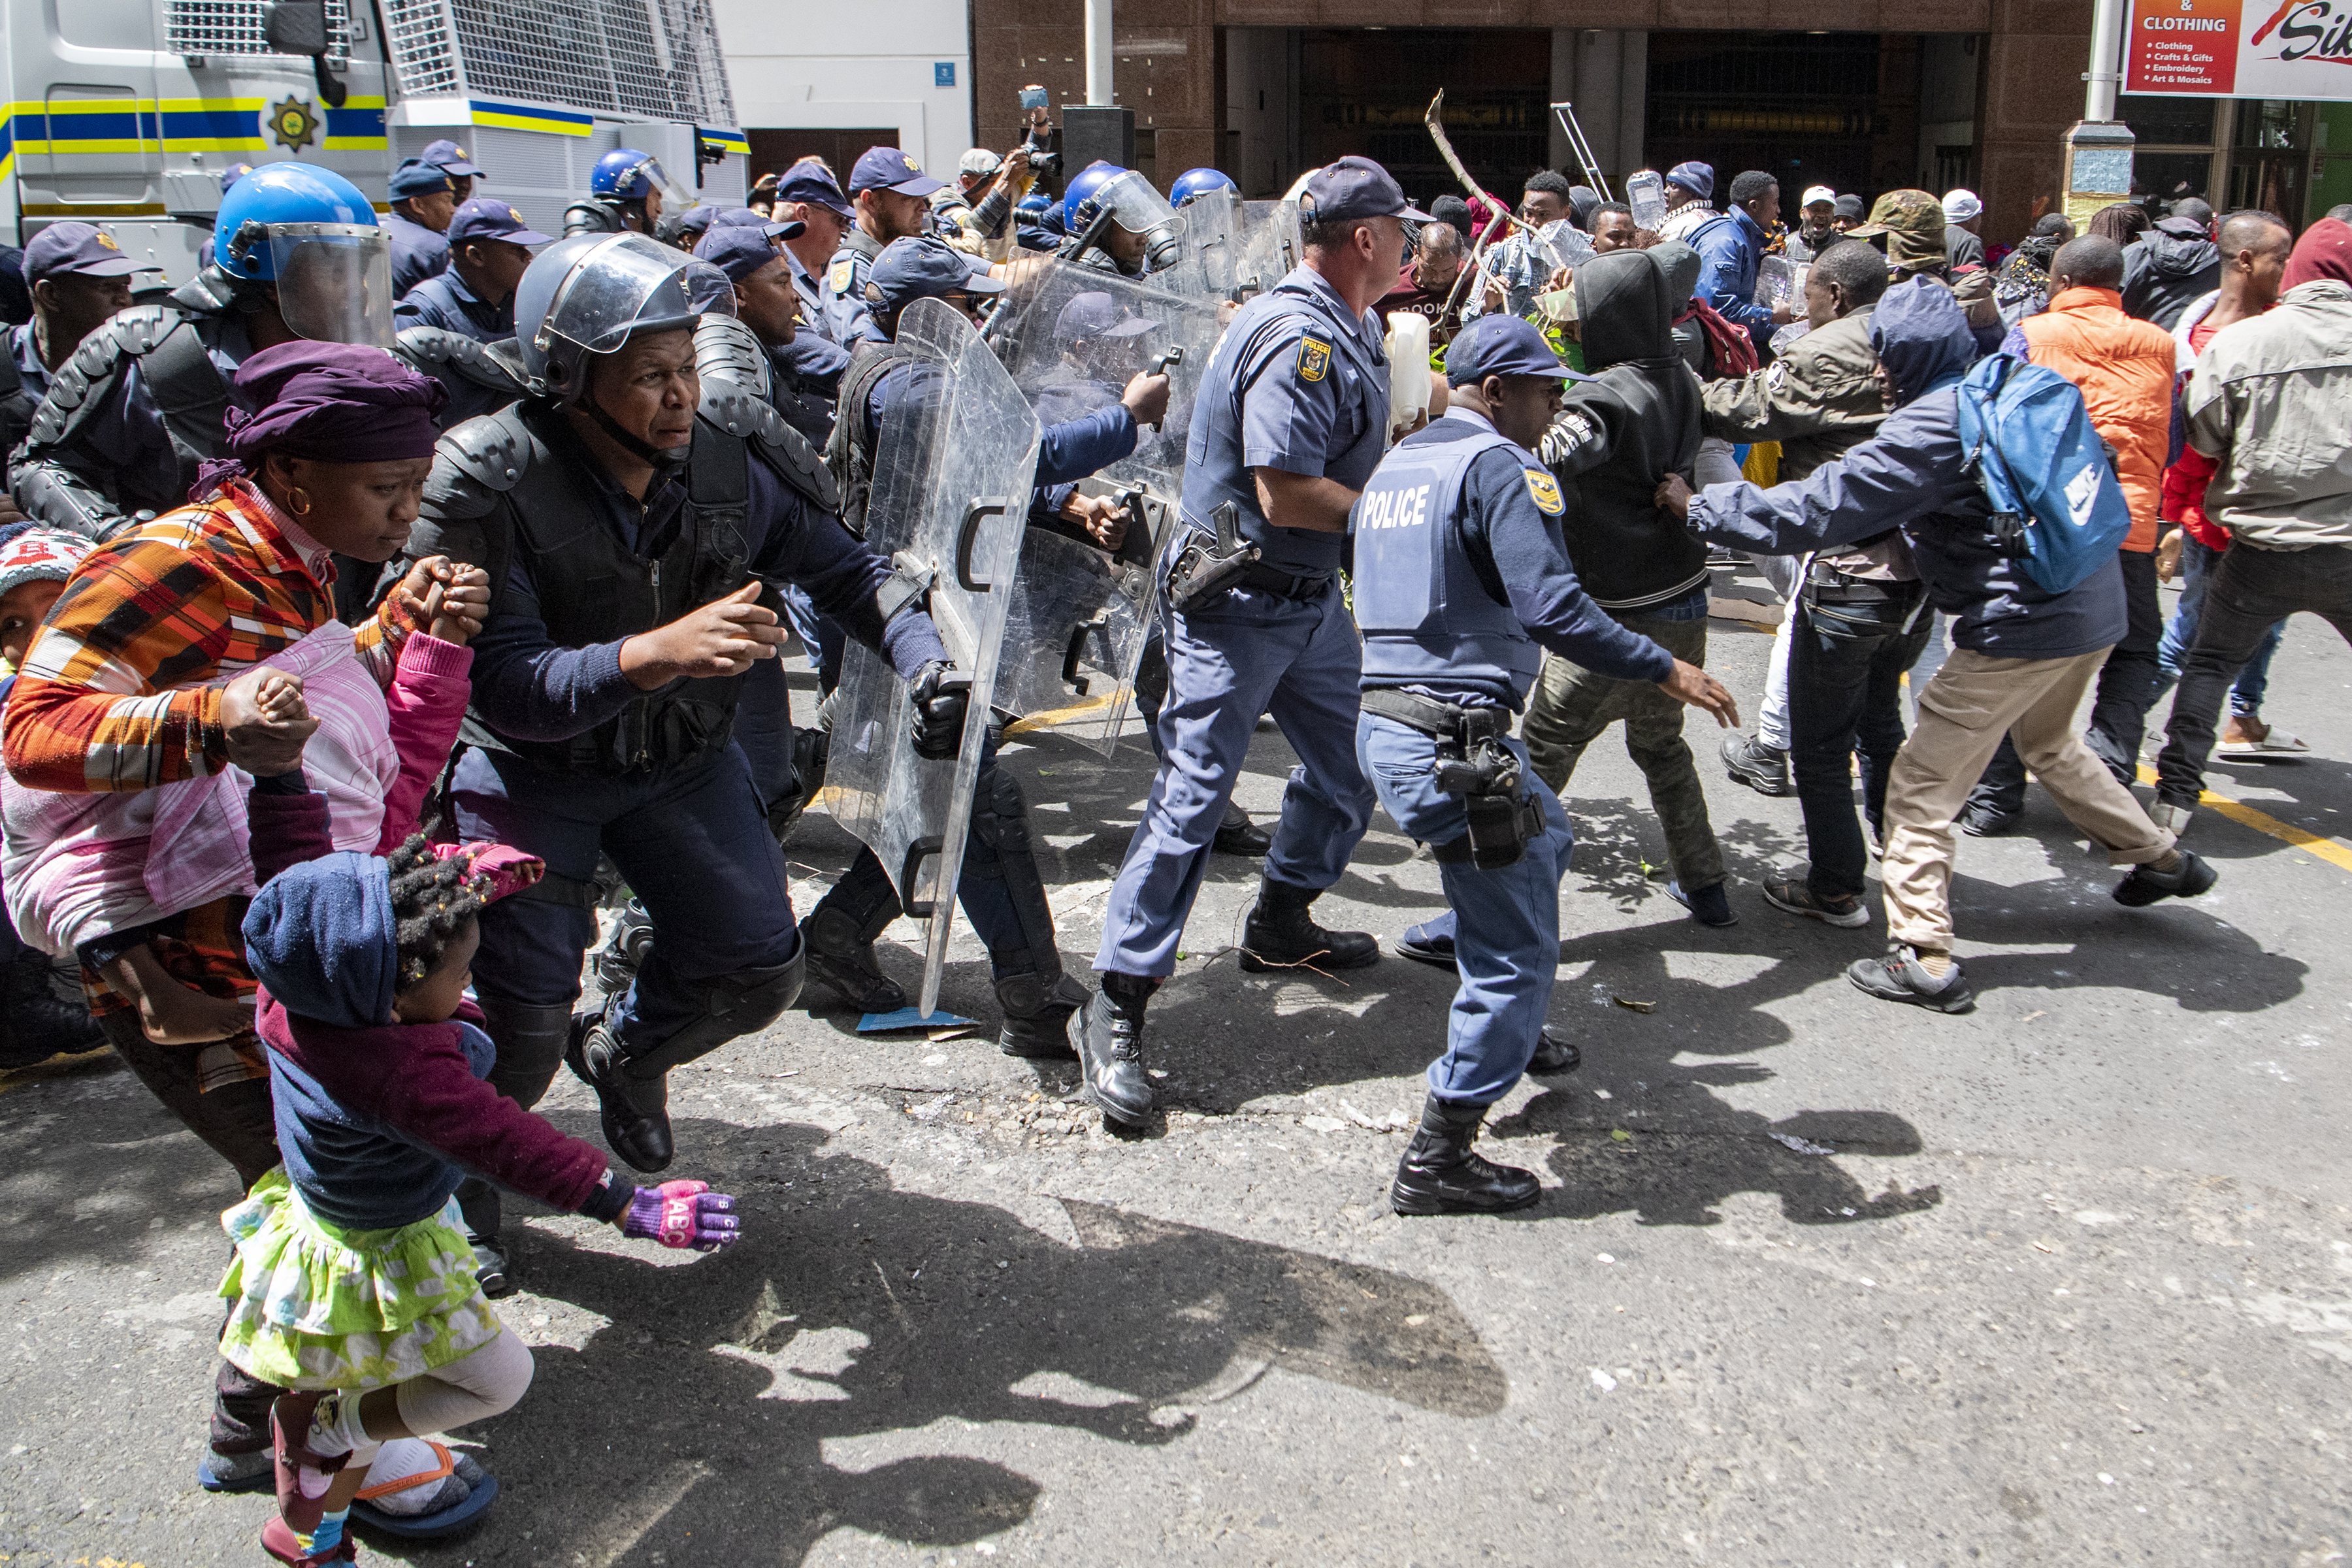 South African police arrest foreigners protesting at UN site